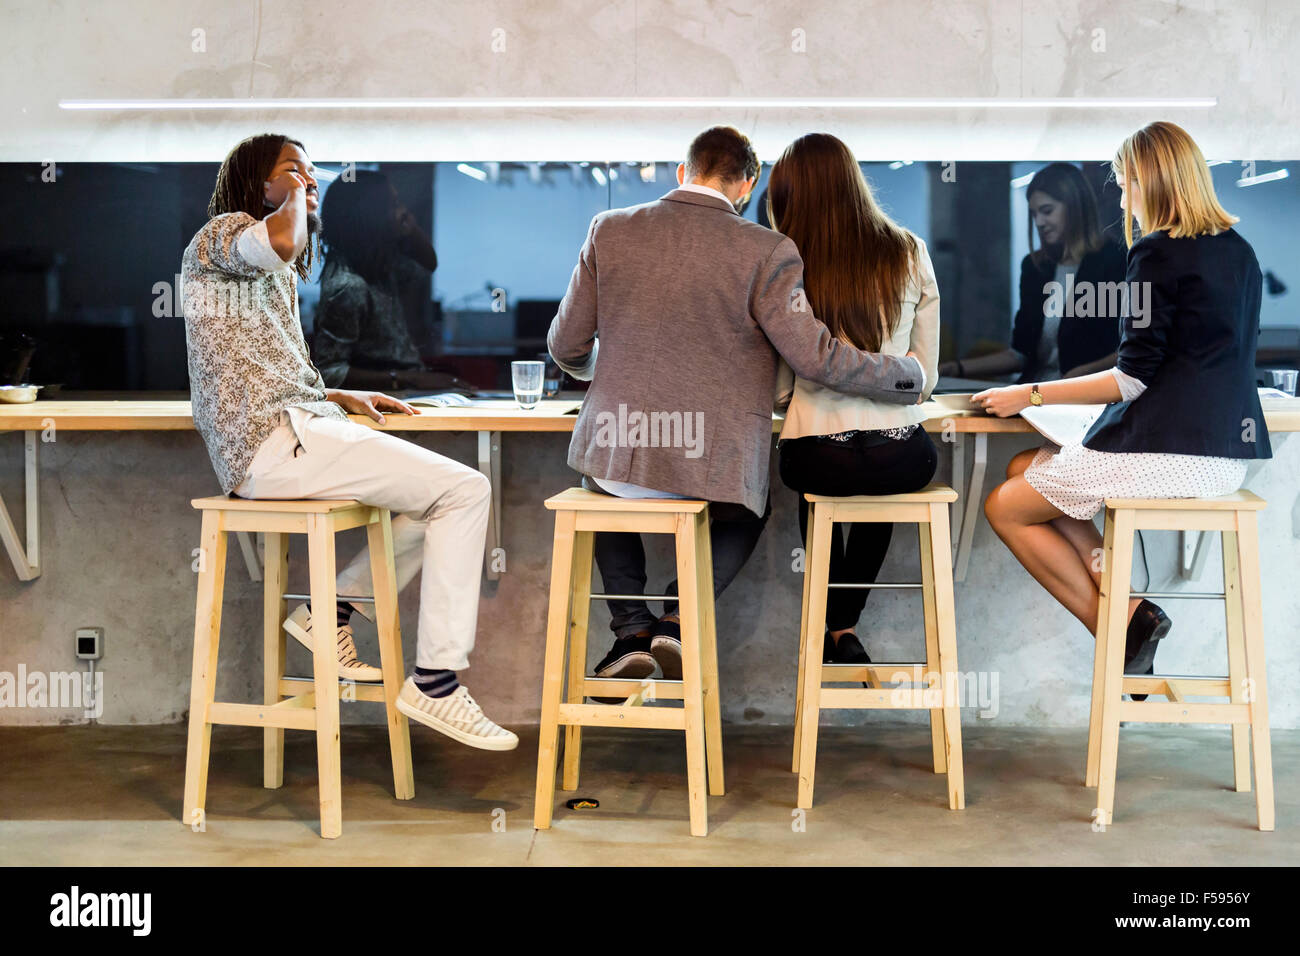 Group of people having a break from work in the cafeteria - Stock Image